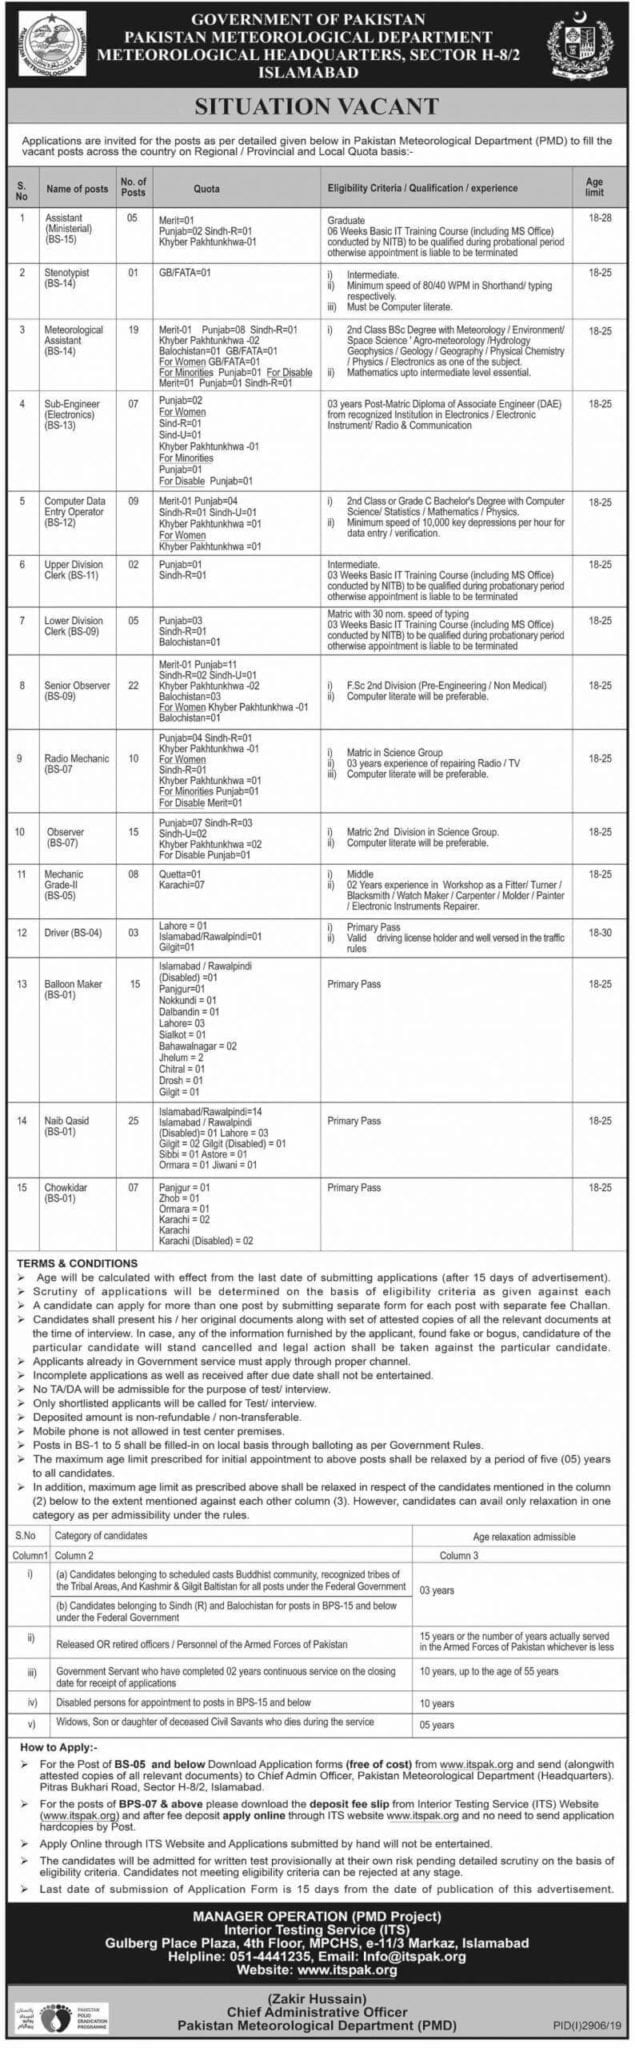 Pakistan Meteorological Department Pmd Headquarters Islamabad Jobs